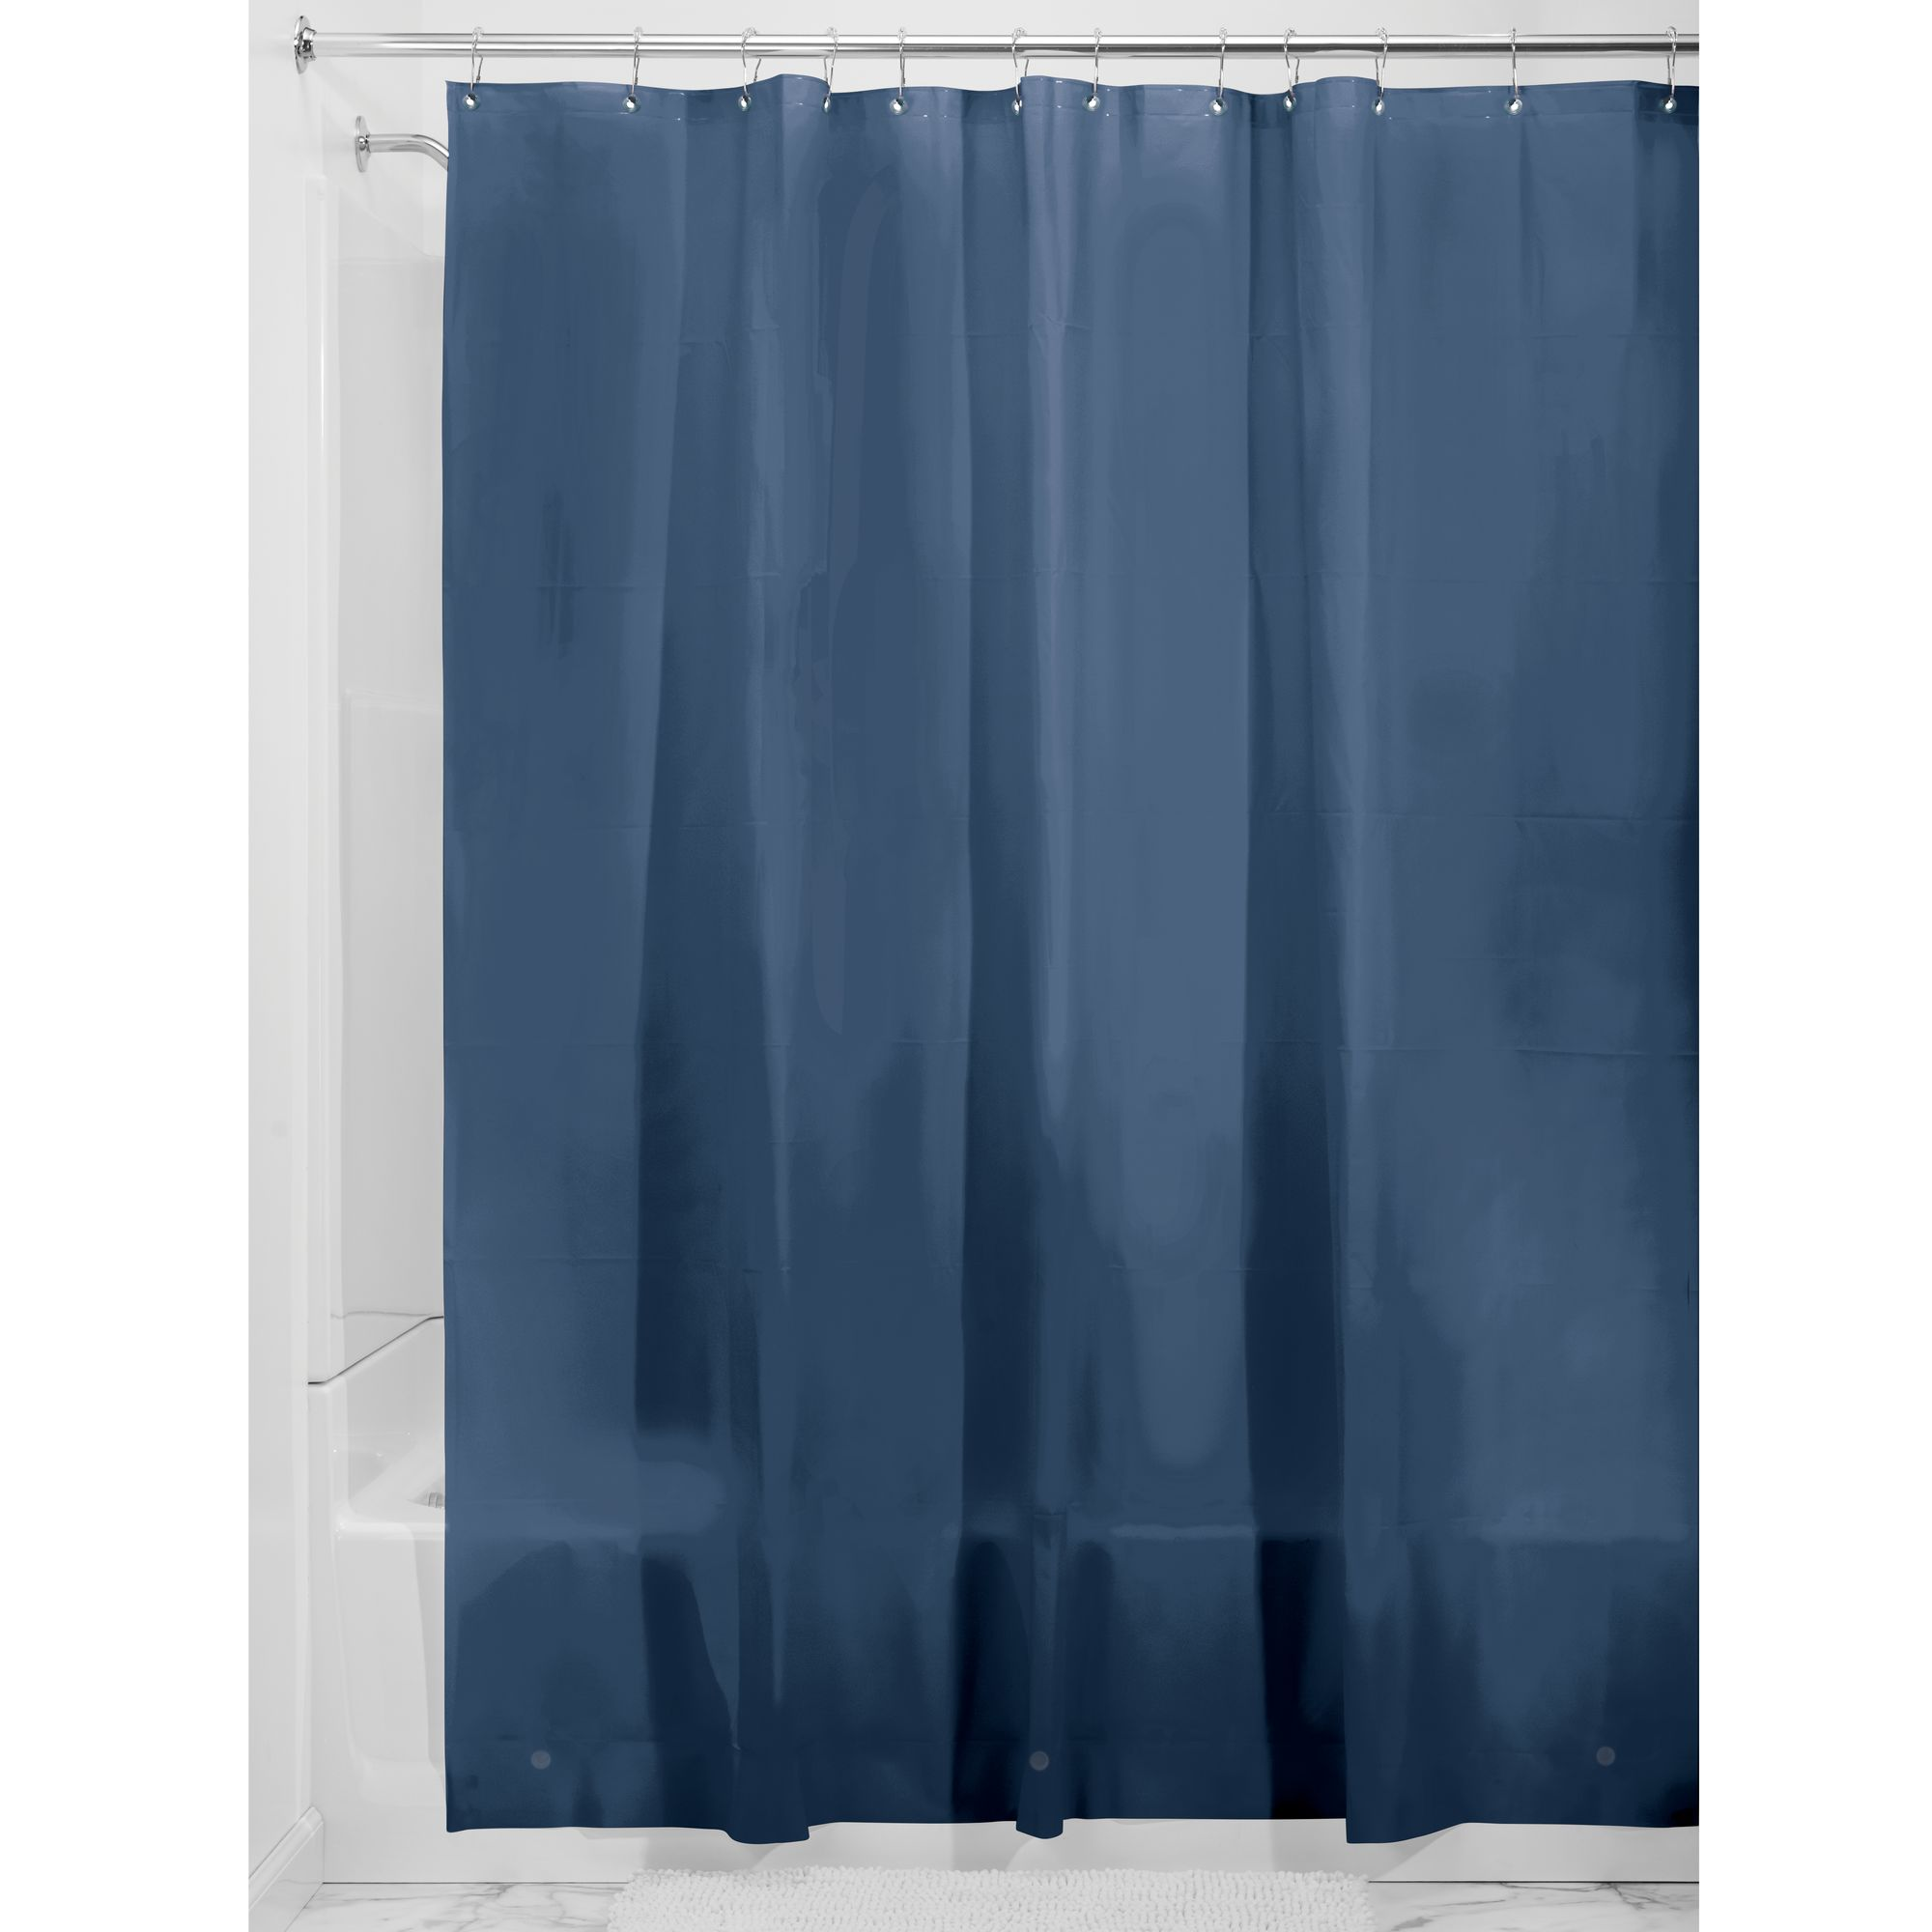 "InterDesign PEVA 3 Gauge Shower Curtain Liner, Stall 54"" x 78"", Frost"